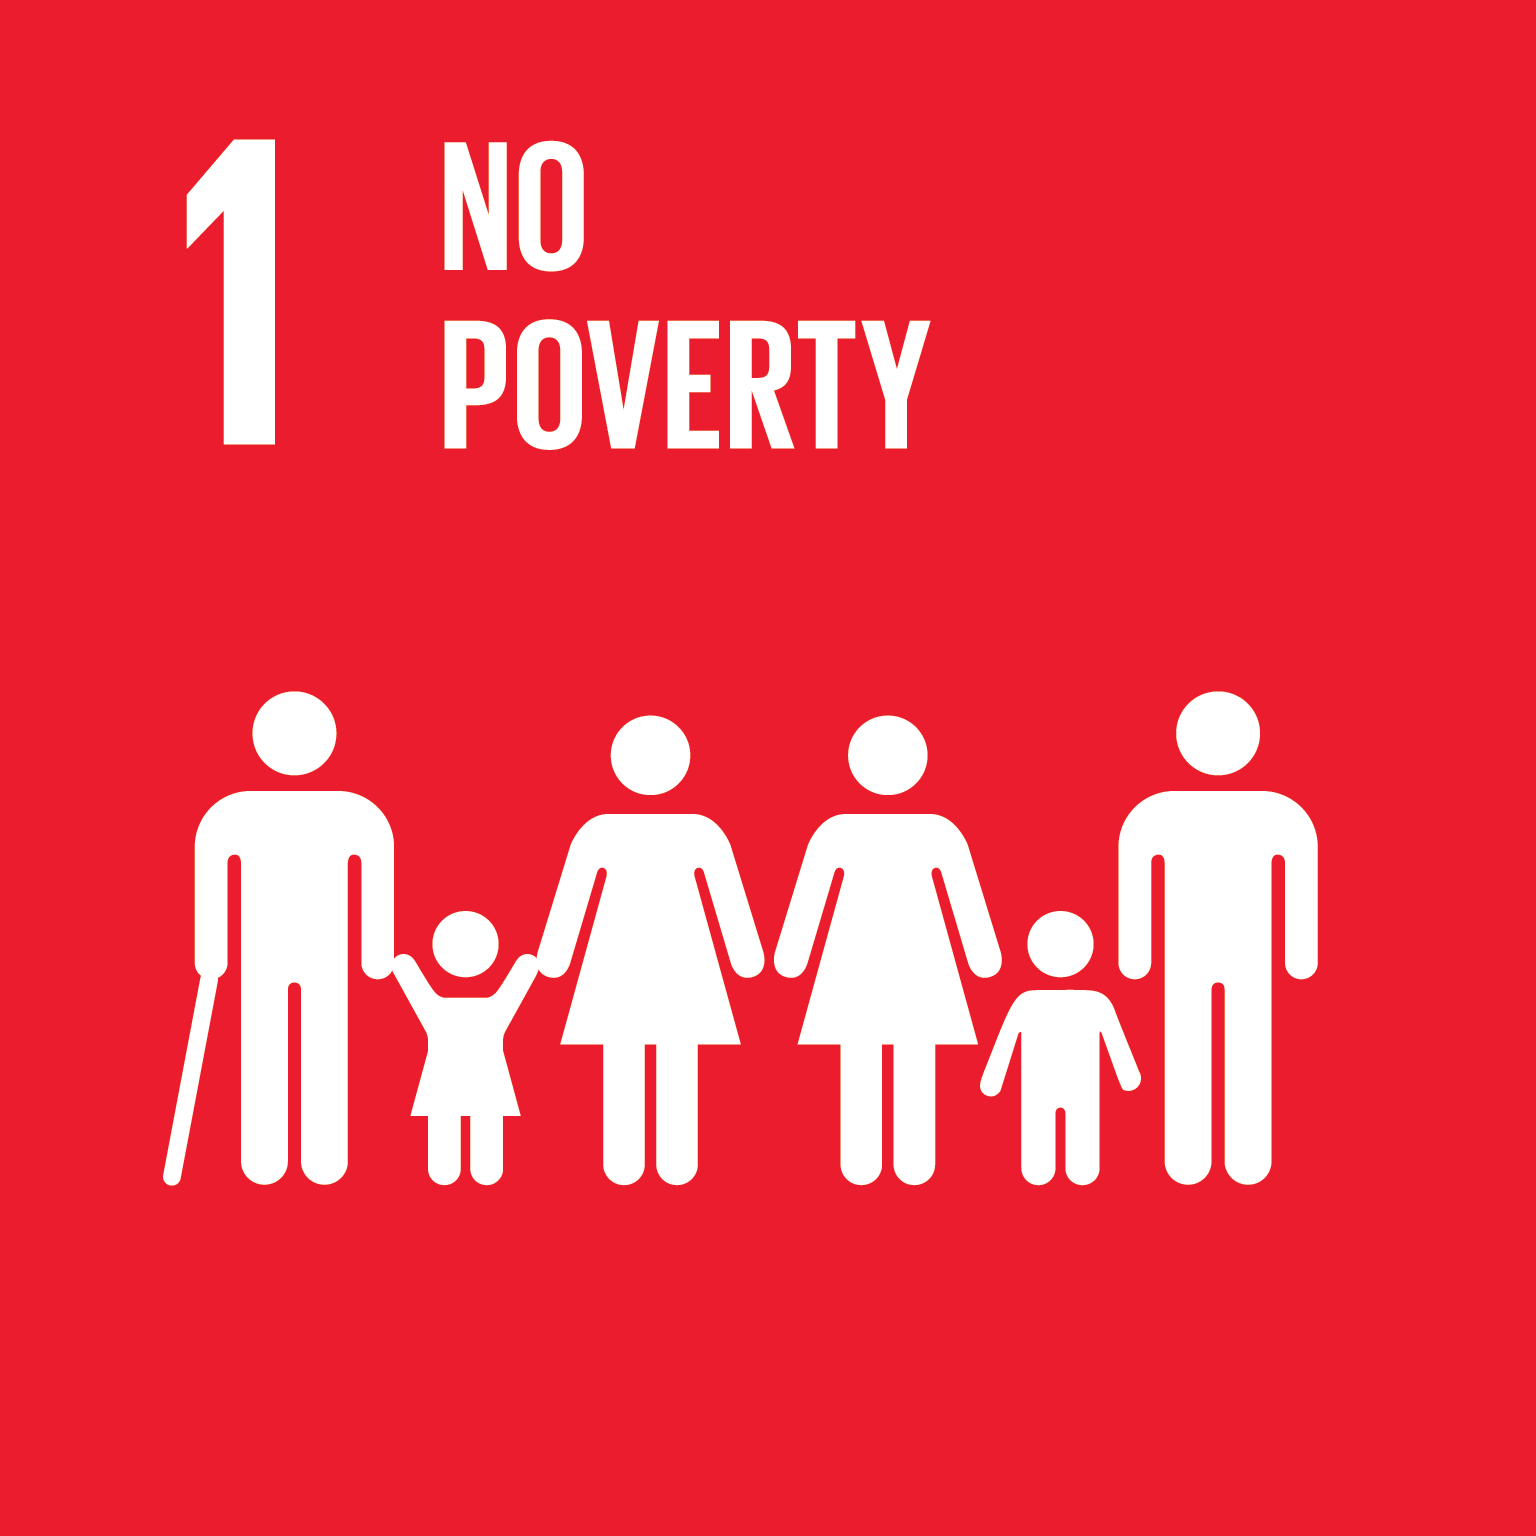 Sustainable Development Goal 1: De Strijd Tegen Armoede